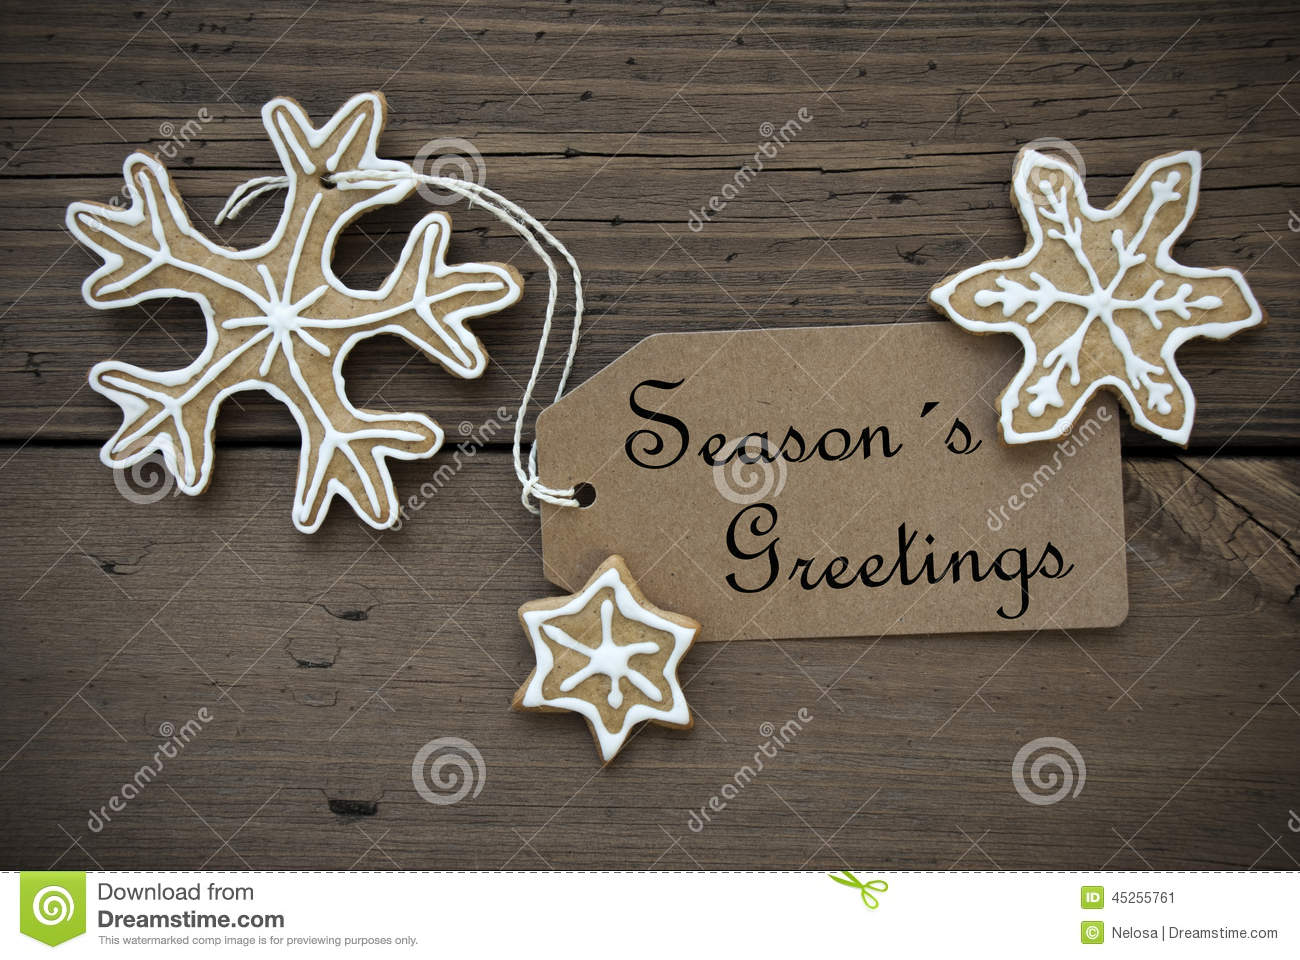 Seasons greetings on a label with ginger bread cookies stock image royalty free stock photo kristyandbryce Images